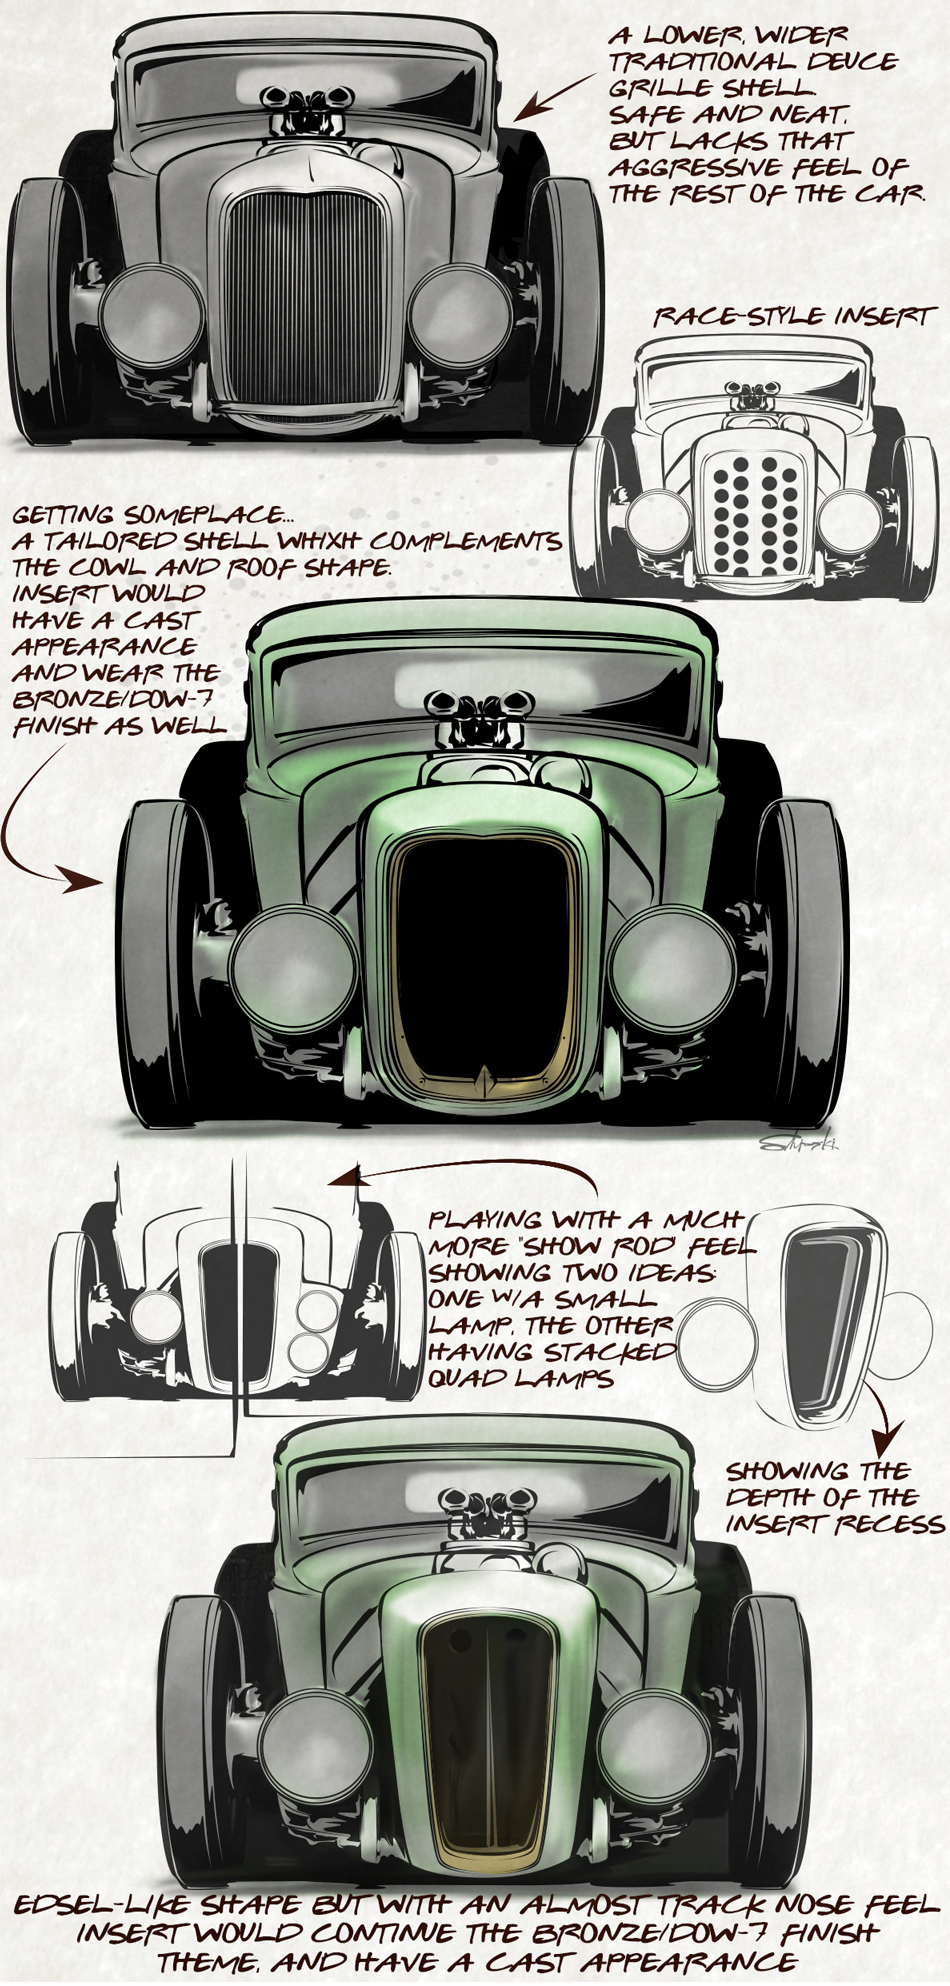 ORIGINAL DESIGN SKETCHES BY BRIAN STUPSKI FOR THE CAL AUTO CREATIONS MODEL A